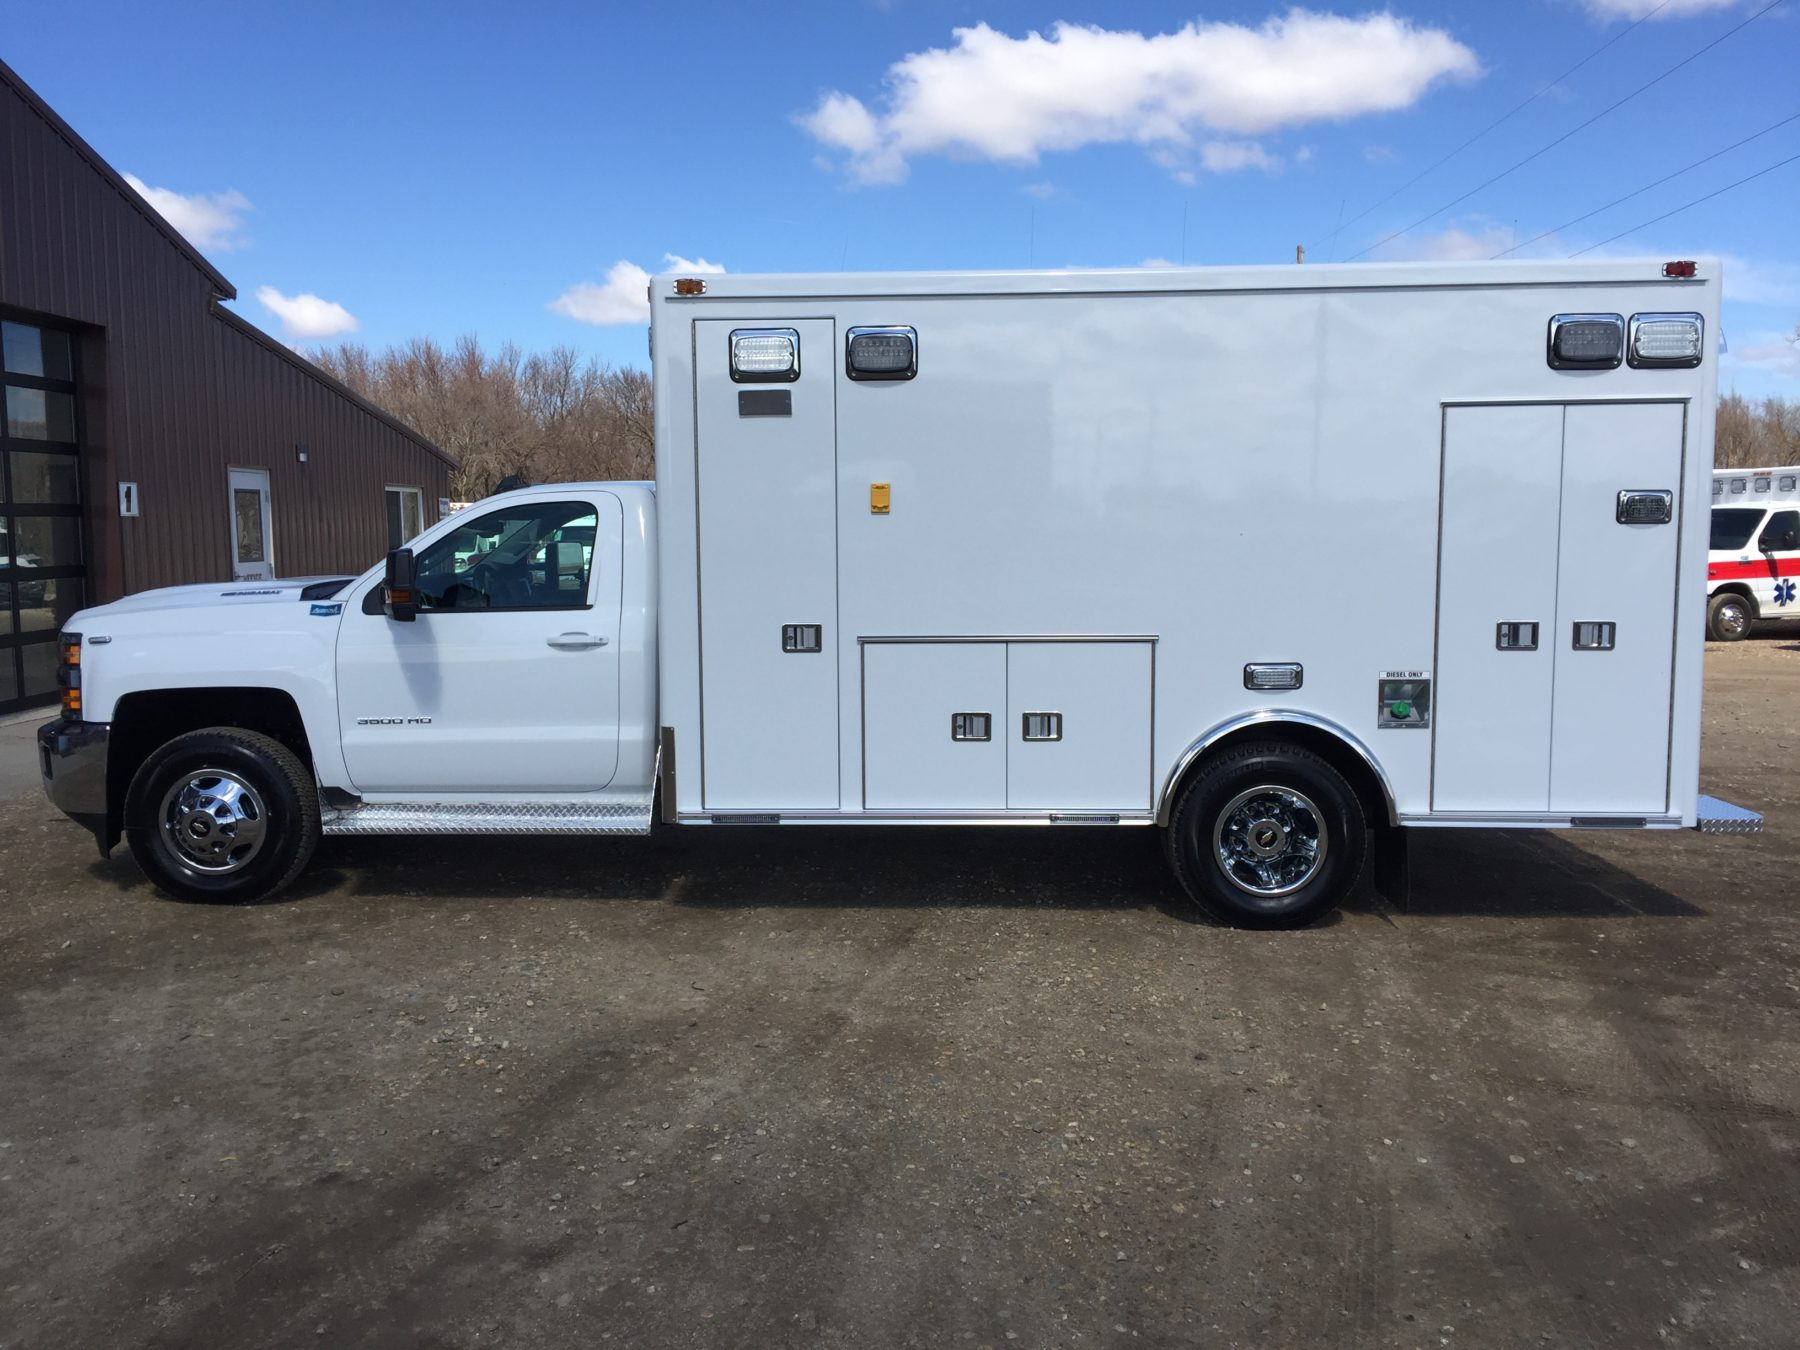 2017 Chevrolet K3500 4x4 Type 1 Ambulance For Sale – Picture 5